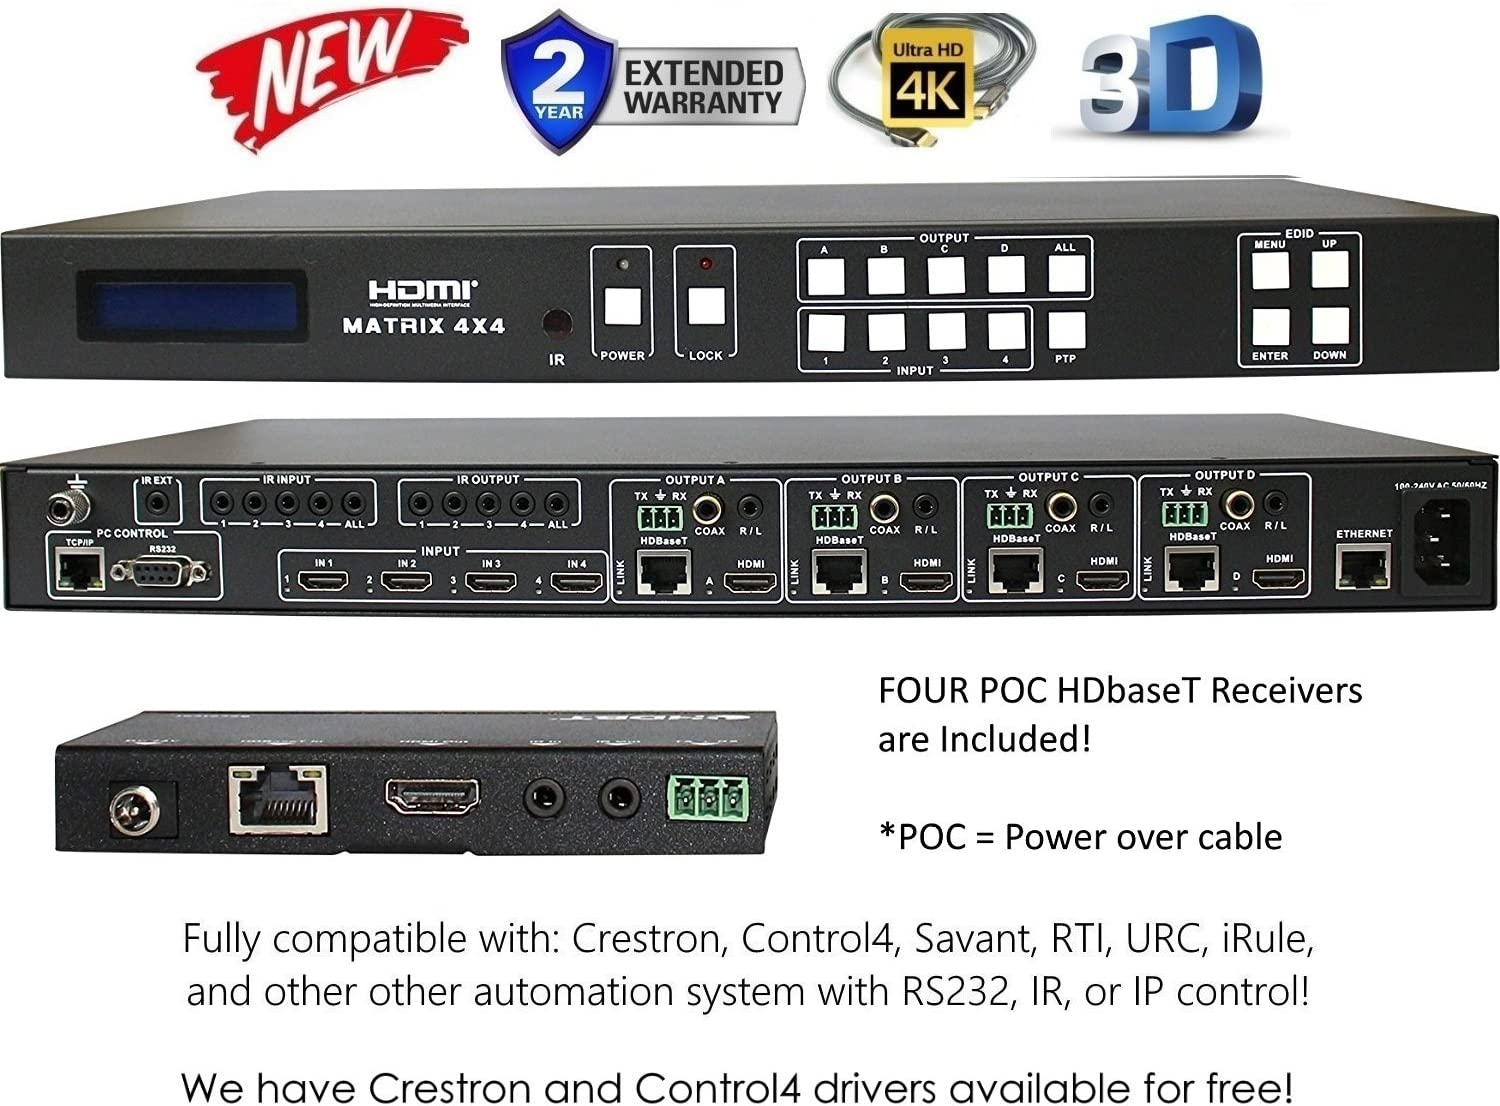 4x8 4K HDMI 4x4 Matrix SWITCHER w/Four PoC RECEIVERS (CAT5e or CAT6). HDCP2.2 HDTV Routing SELECTOR SPDIF Audio CONTROL4 Savant Home Automation